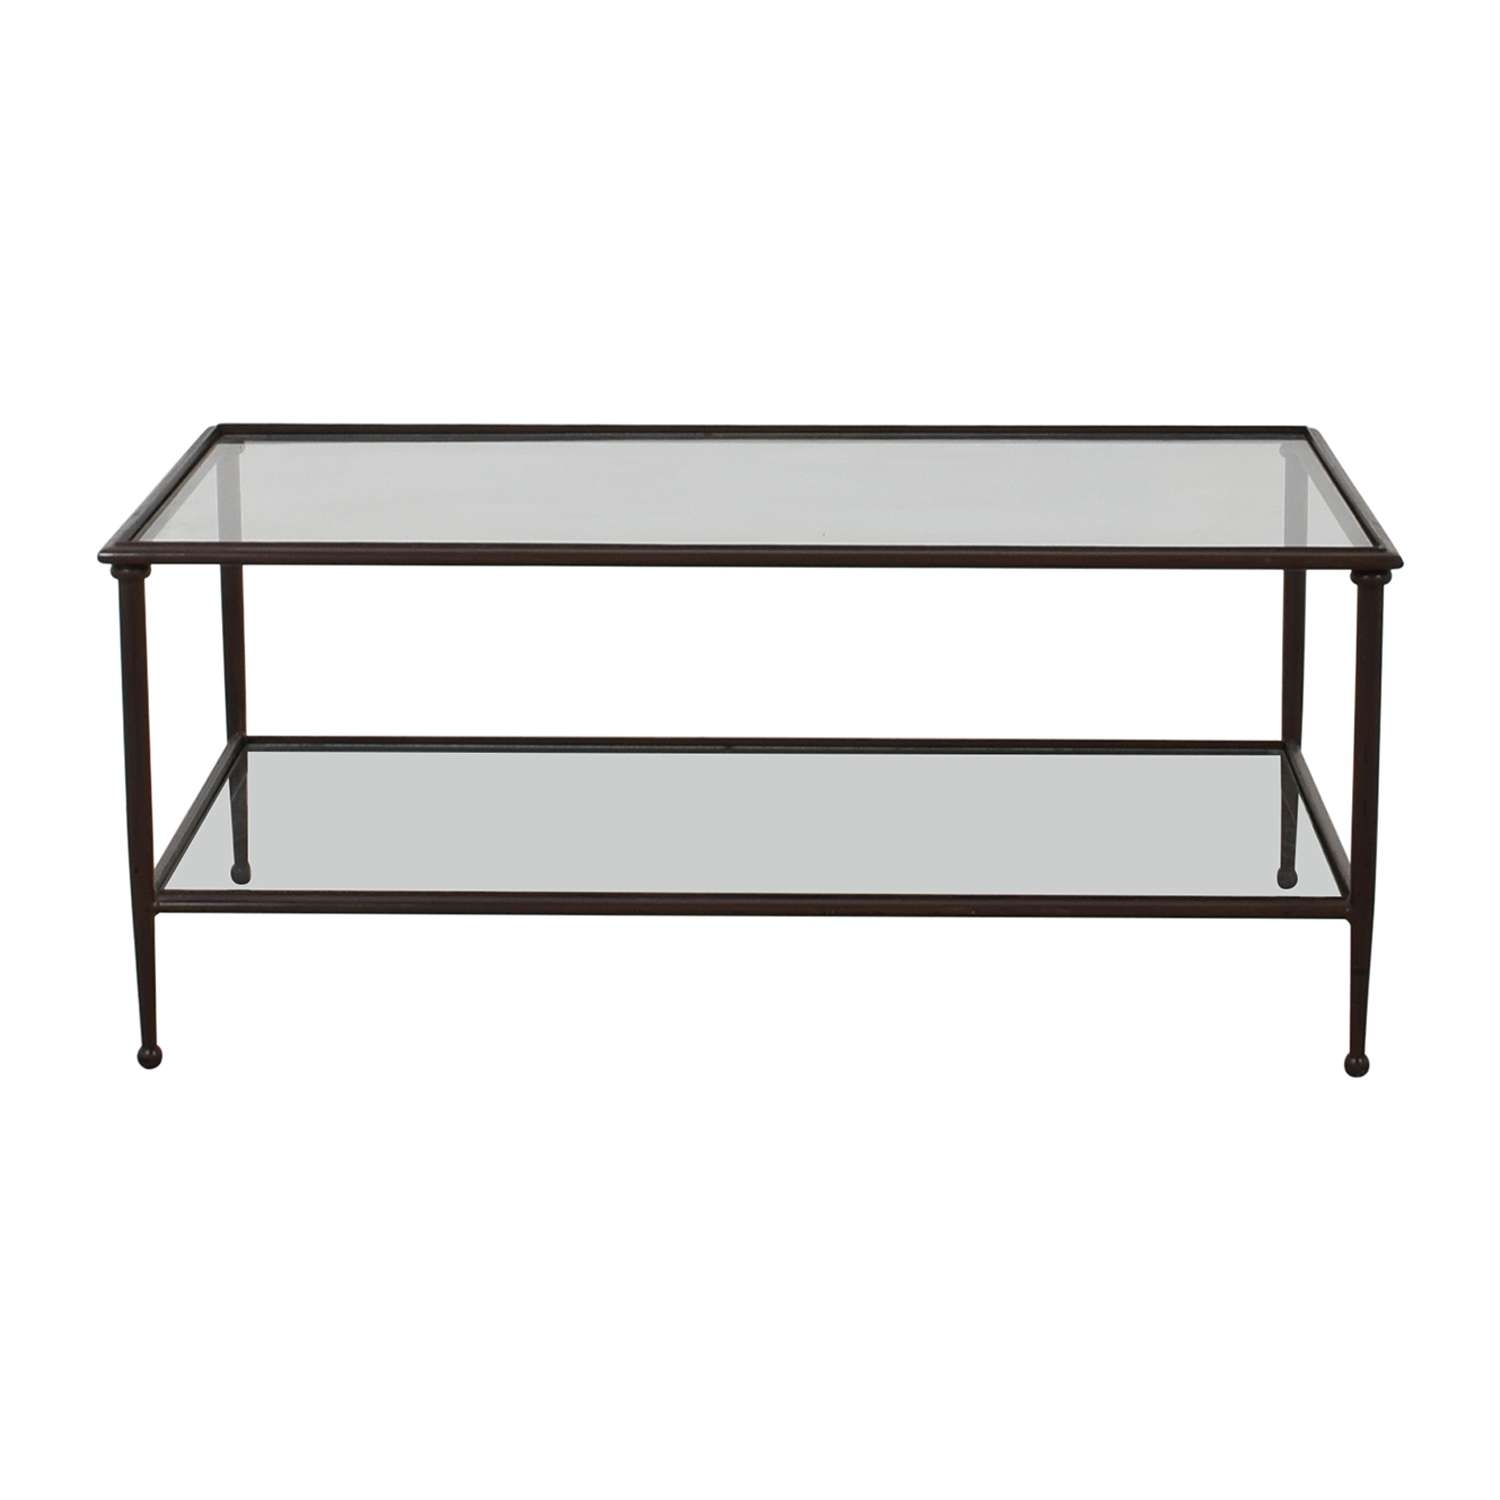 [%best And Newest Revolving Glass Coffee Tables With 72% Off – Wood Metal Scroll And Glass Coffee Table / Tables|72% Off – Wood Metal Scroll And Glass Coffee Table / Tables Regarding Well Known Revolving Glass Coffee Tables%] (View 19 of 20)